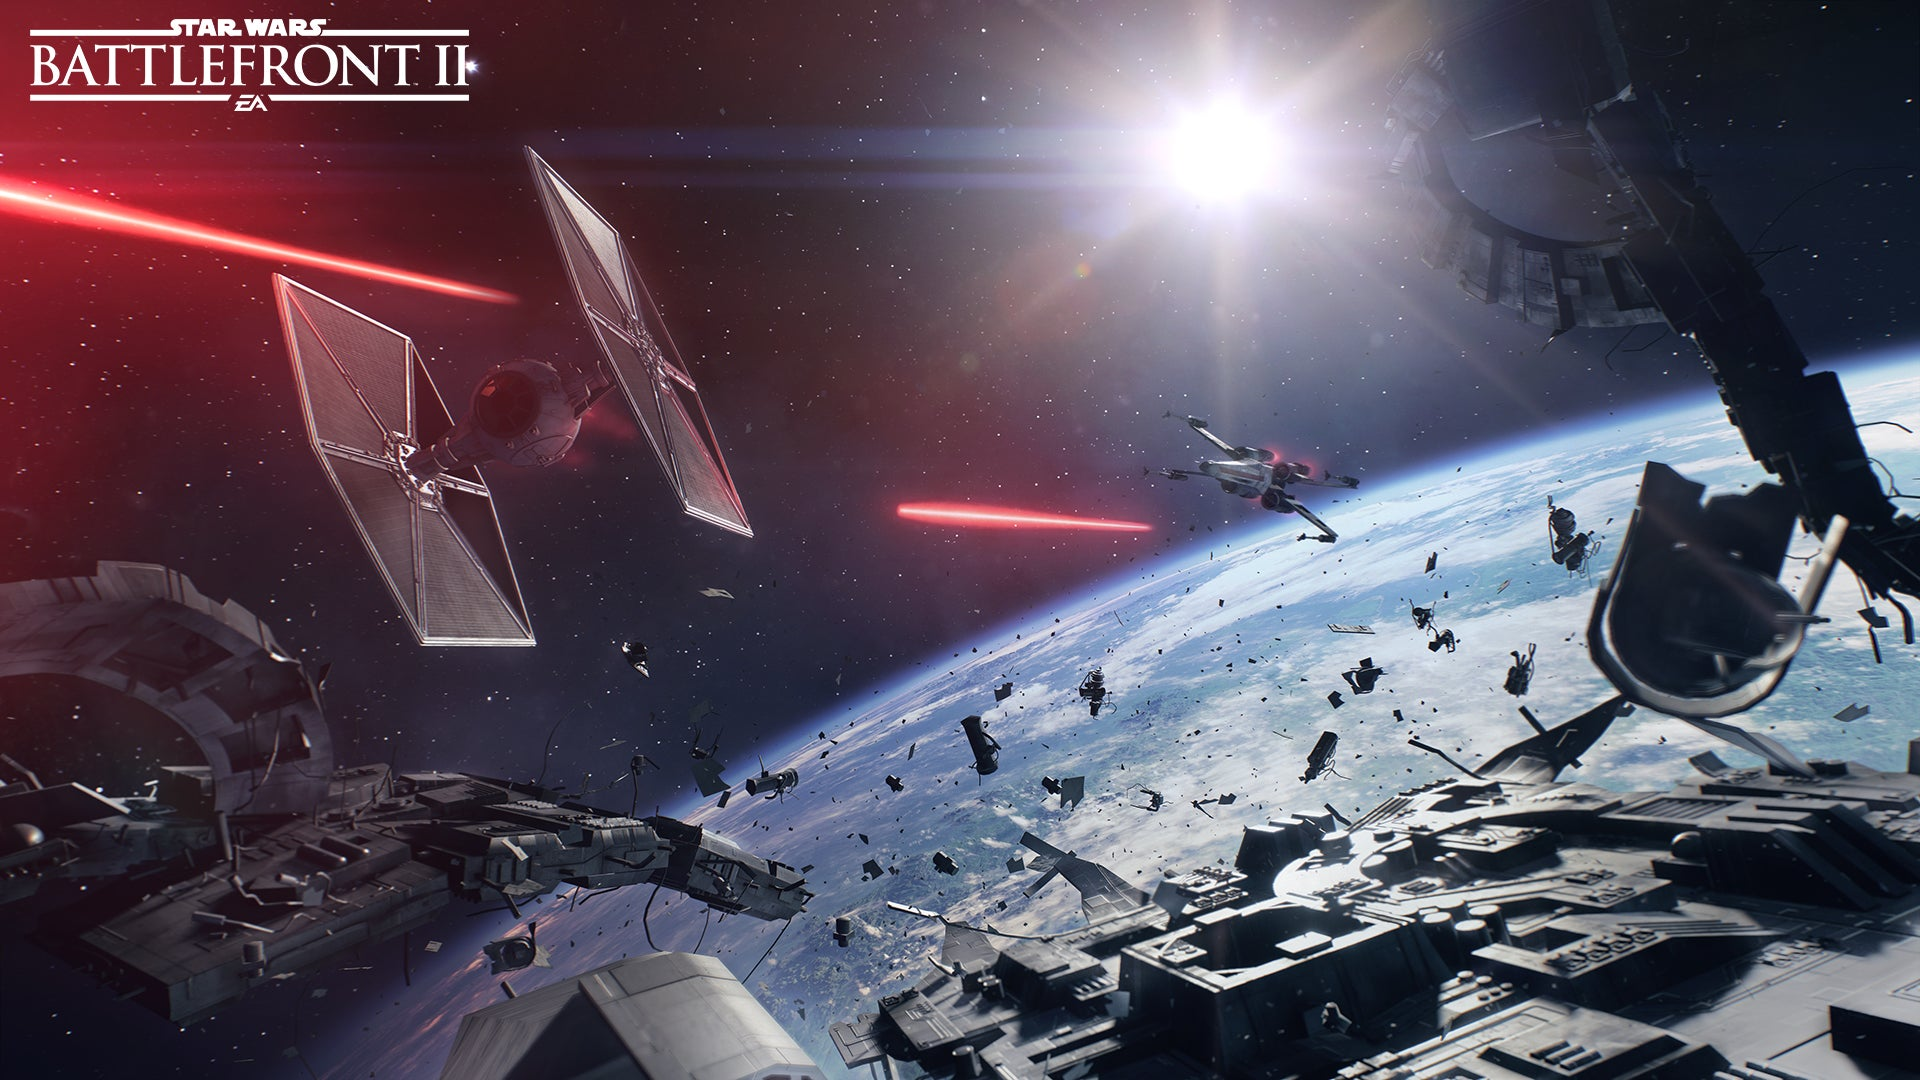 EA's Response to Battlefront 2 Complaints Draws Reddit Backlash